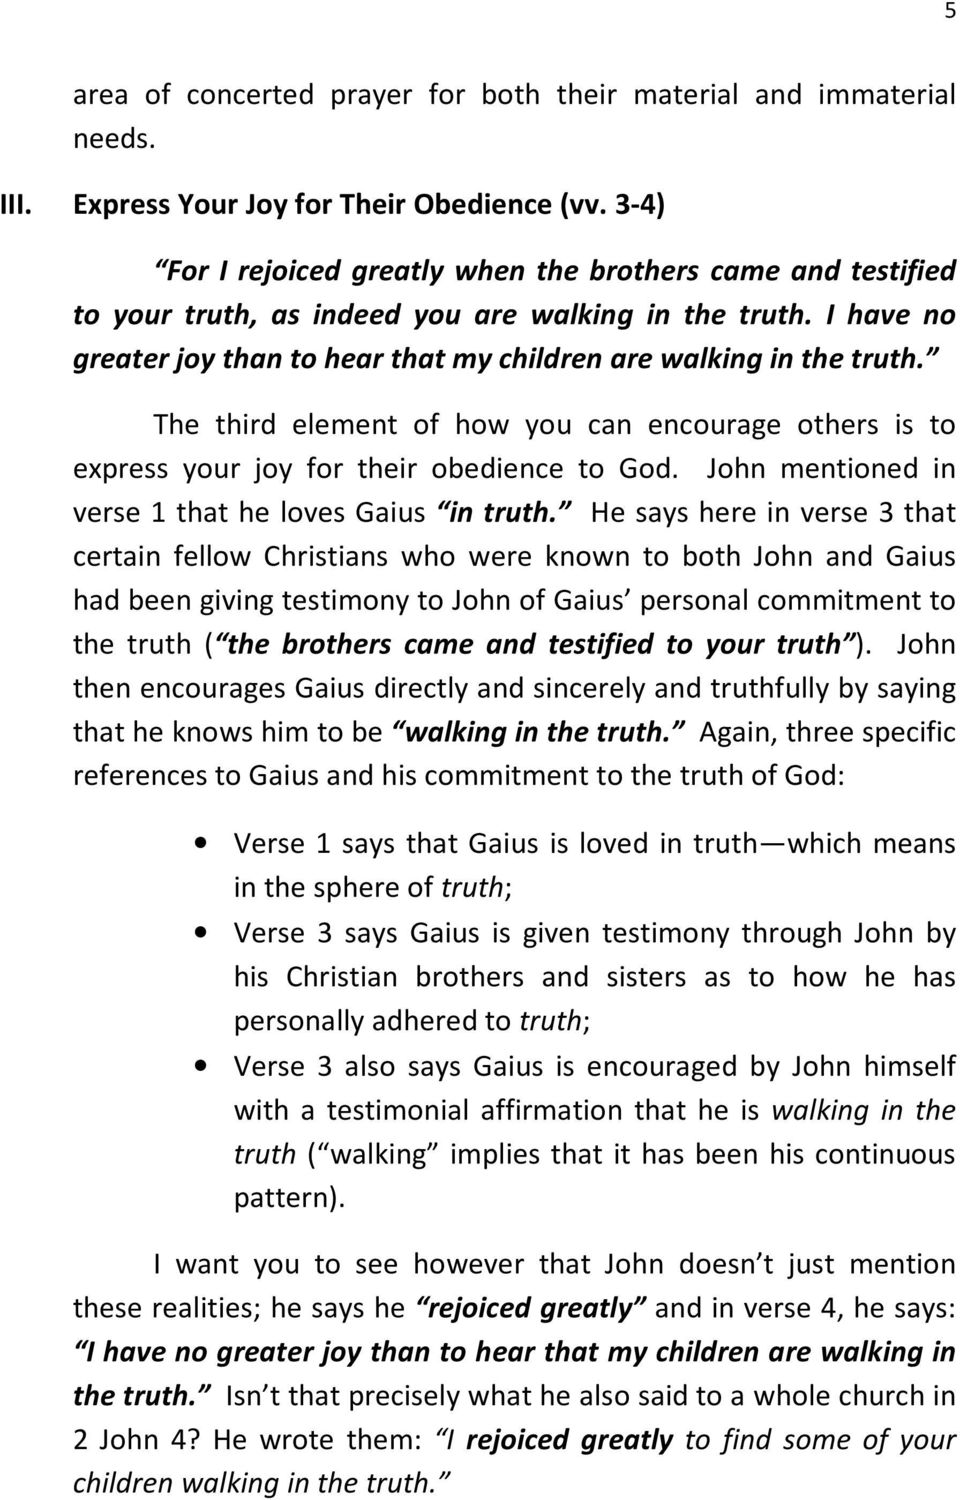 The third element of how you can encourage others is to express your joy for their obedience to God. John mentioned in verse 1 that he loves Gaius in truth.